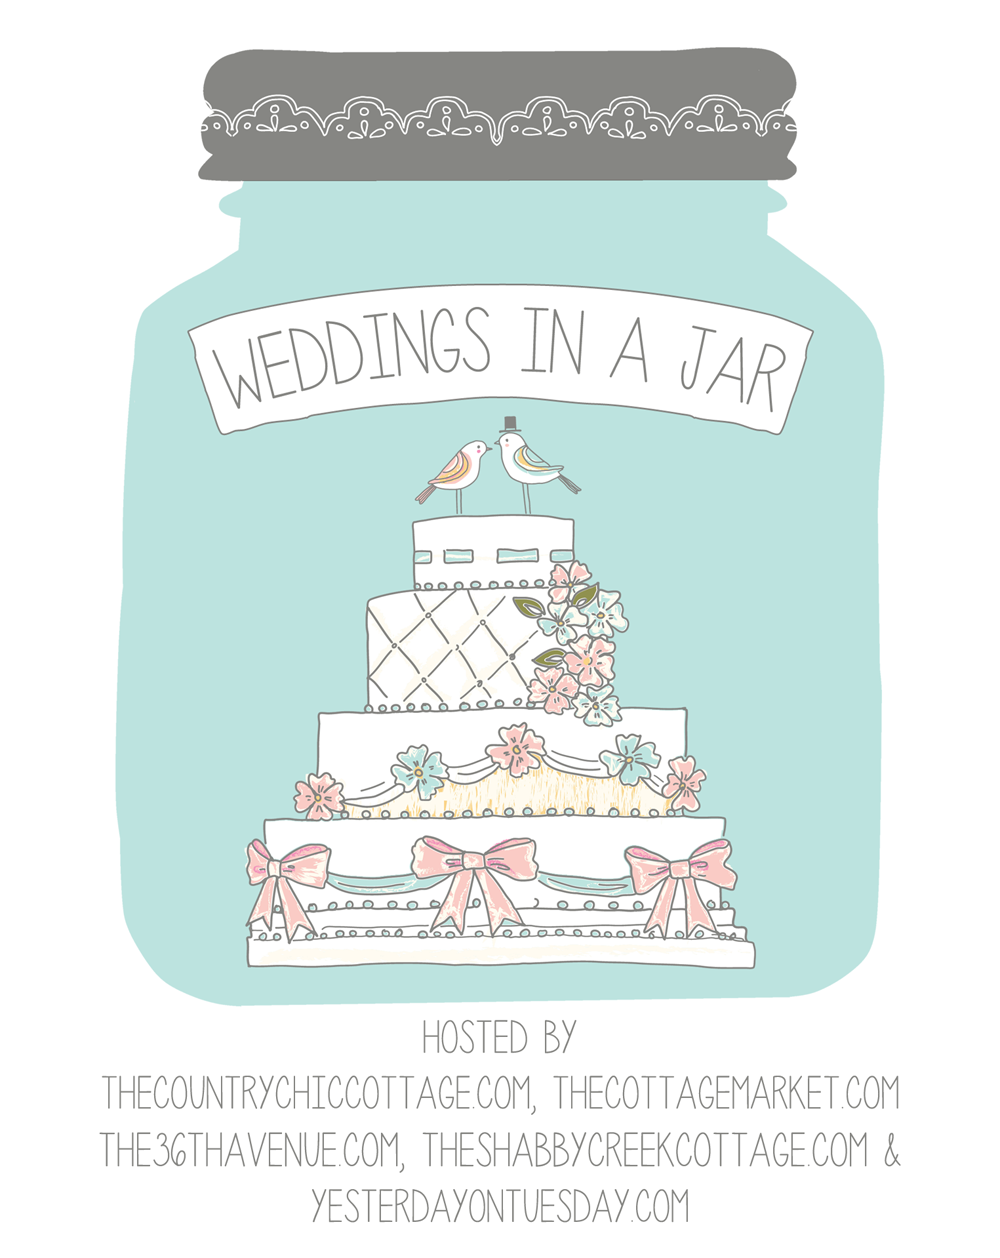 Get tons of great mason jar wedding ideas here!